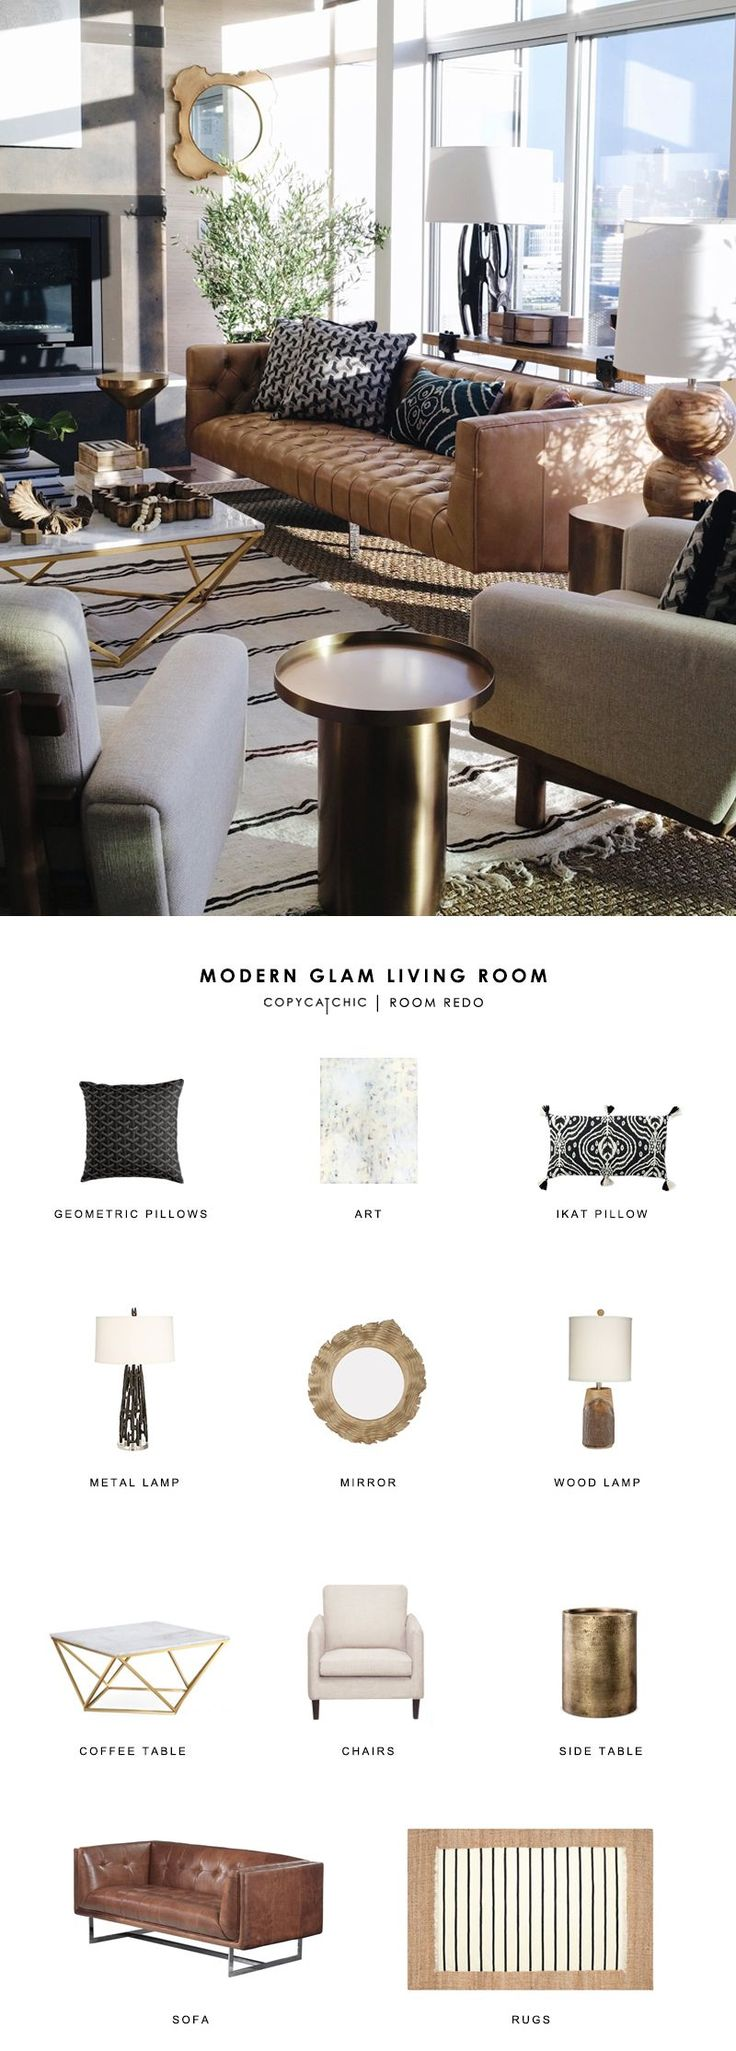 Copy Cat Chic Room Redo | Modern Glam Living Room